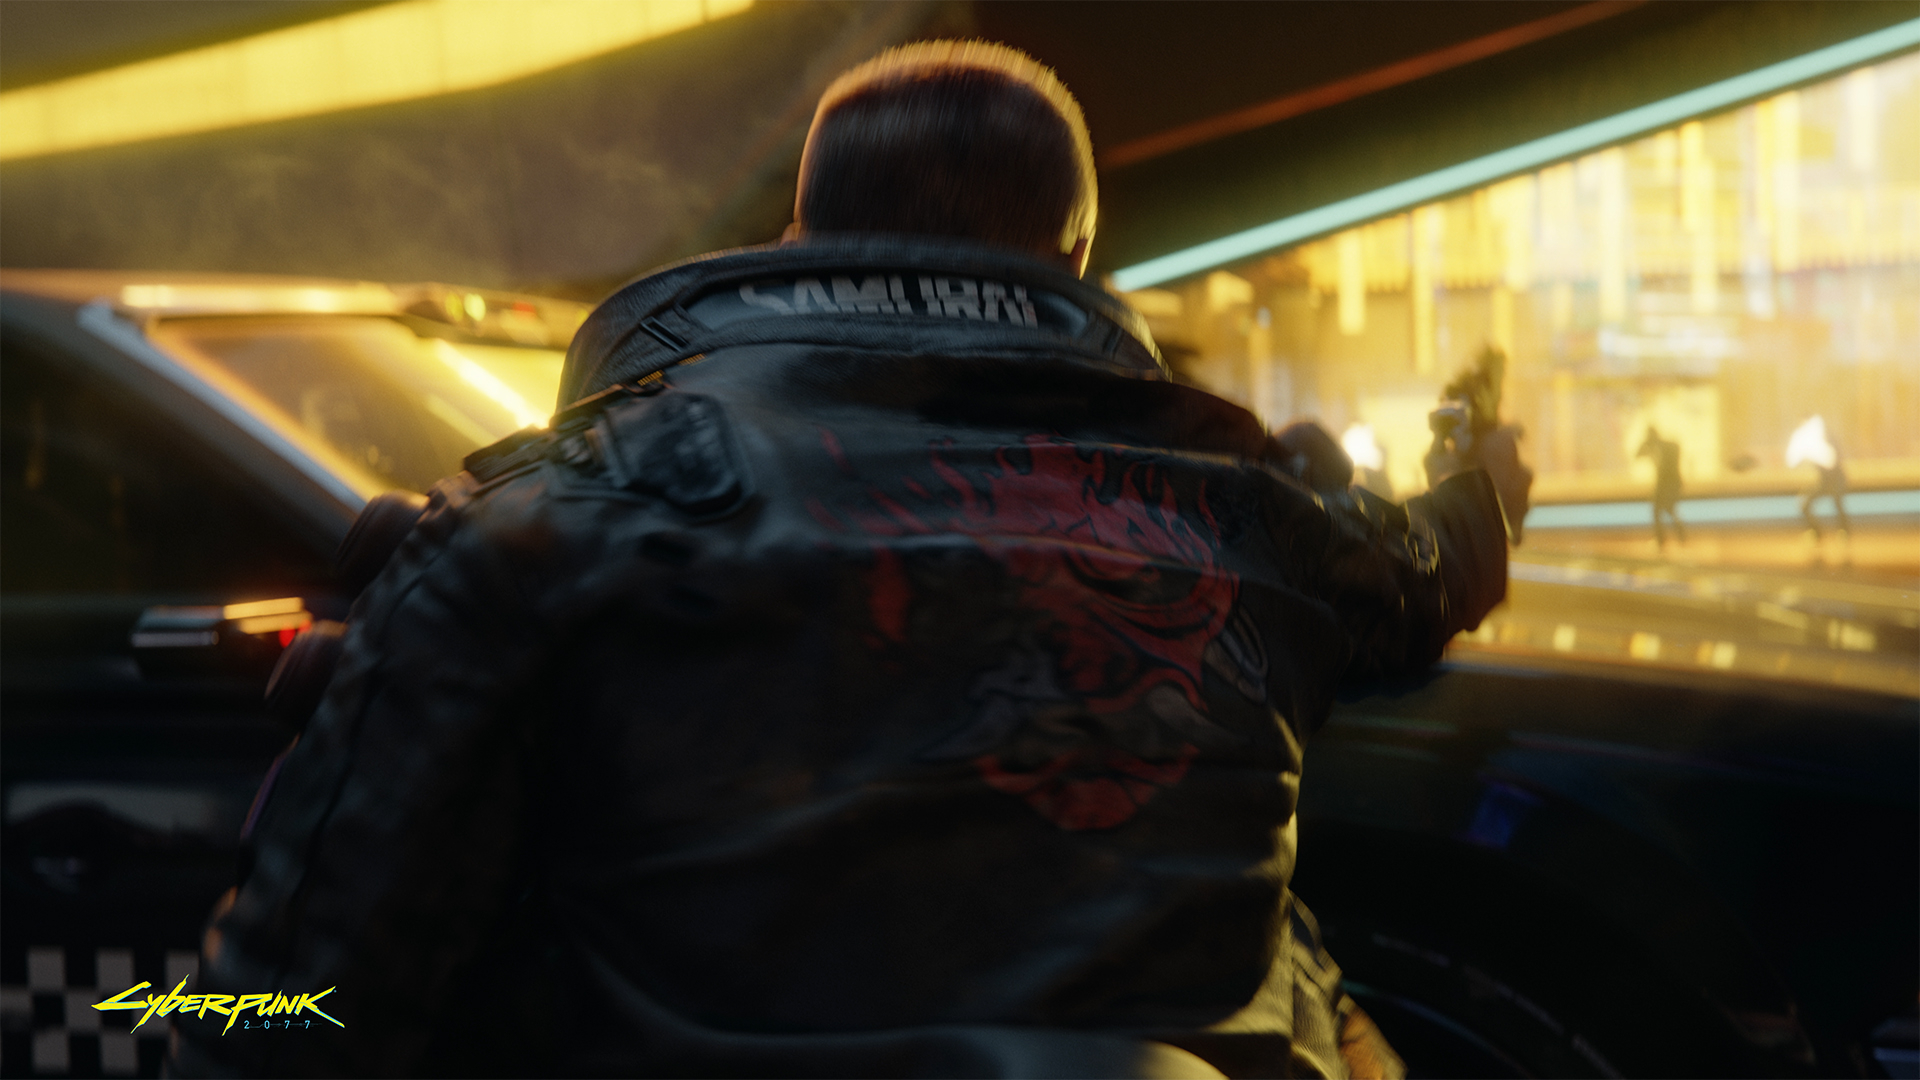 Cyberpunk 2077 Updated PC Specs Revealed, Ray-Tracing Requirements Highlighted